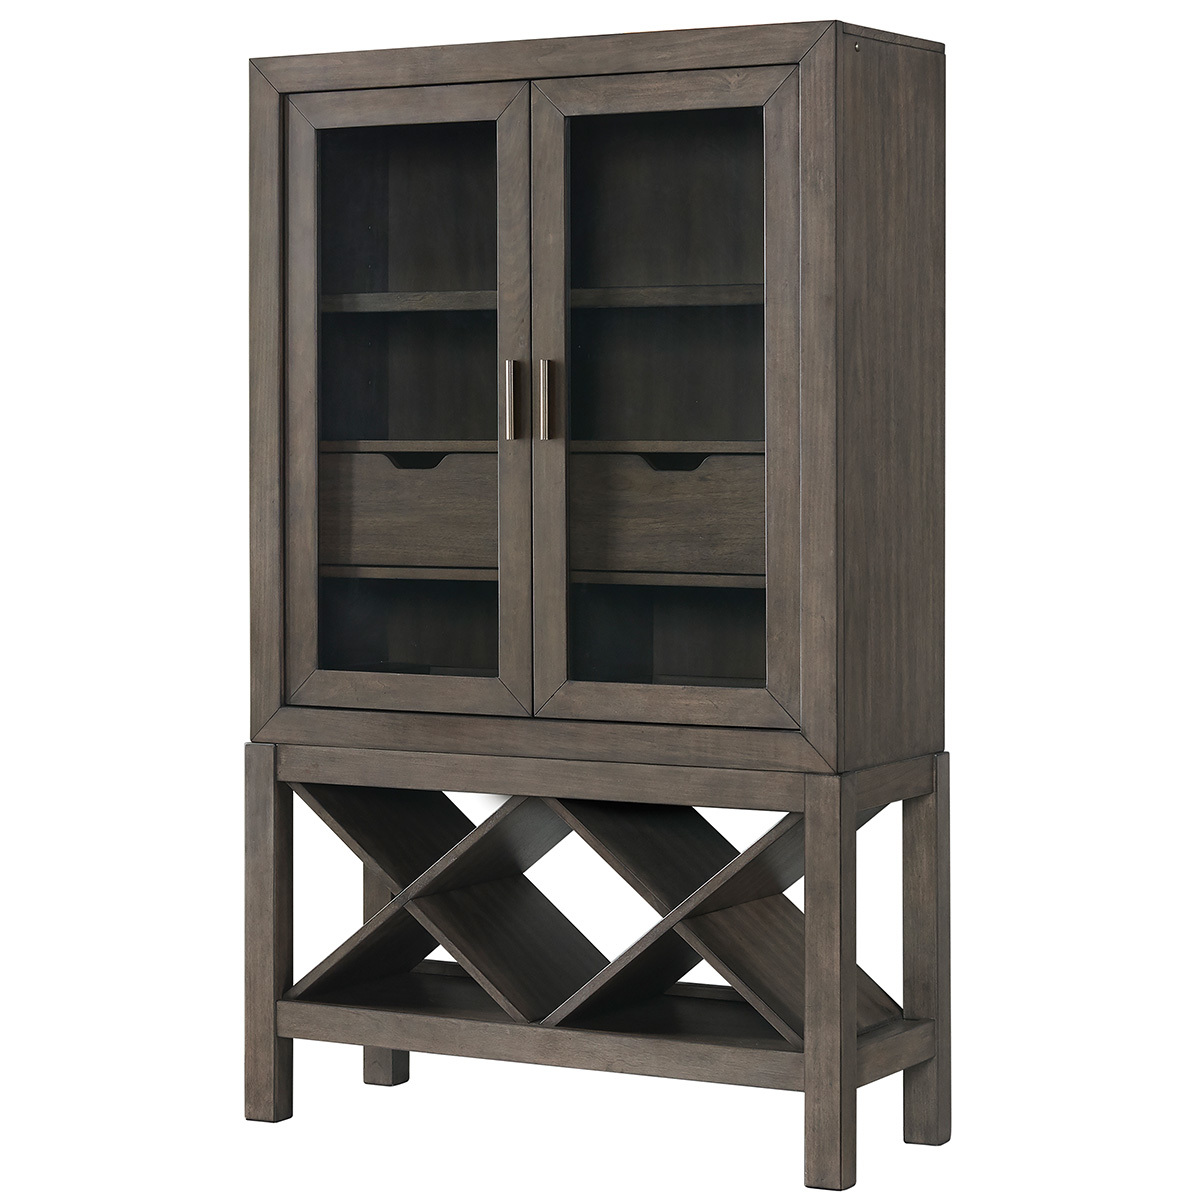 universal broadmoore furniture halsey bar cabinet